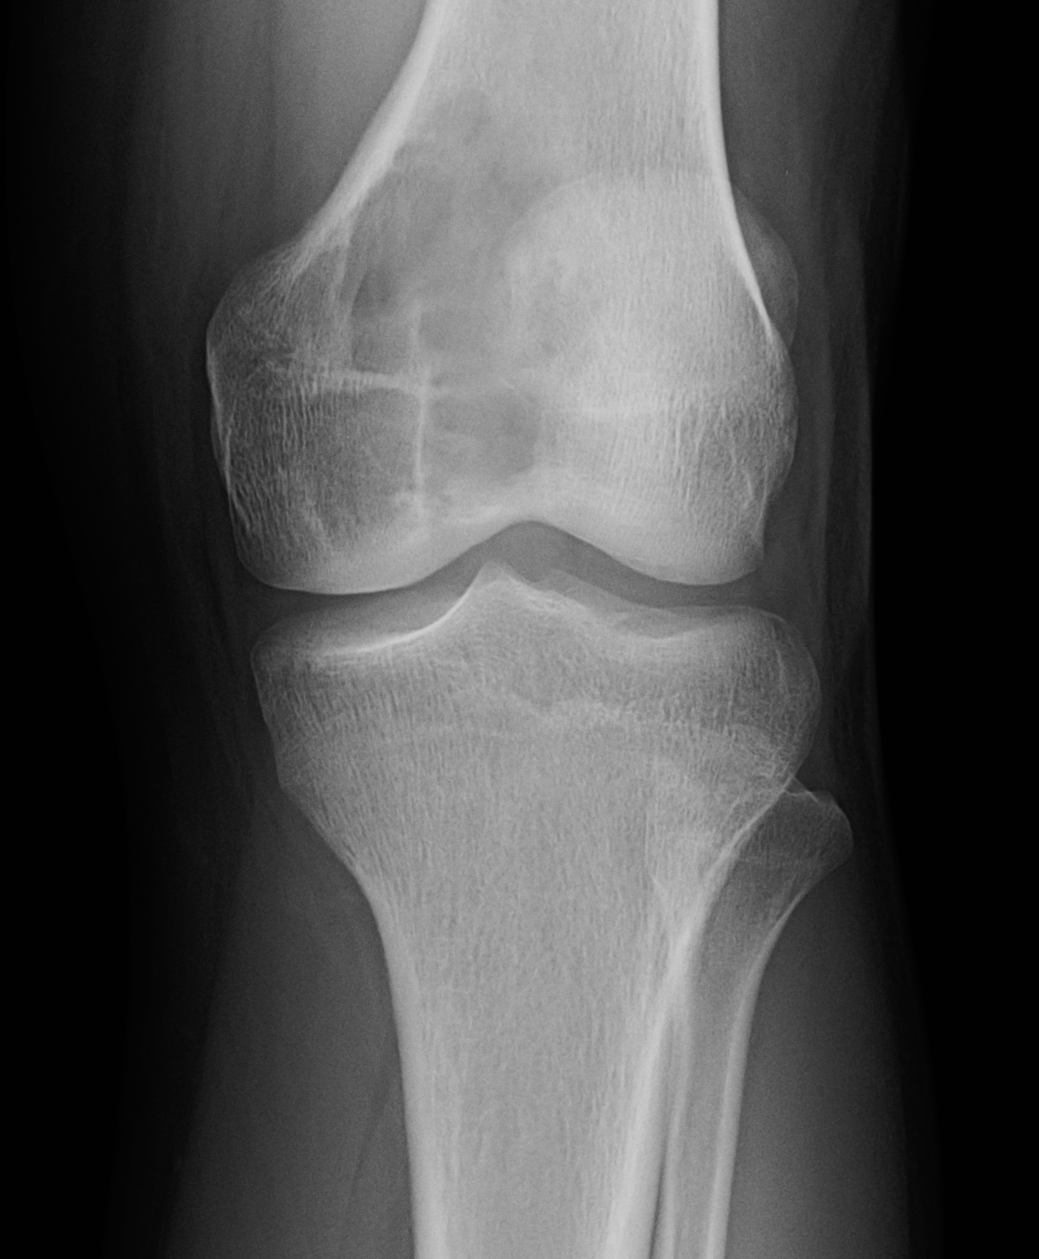 Radiographic image of a lytic lesion primarily centered at the epiphysis.